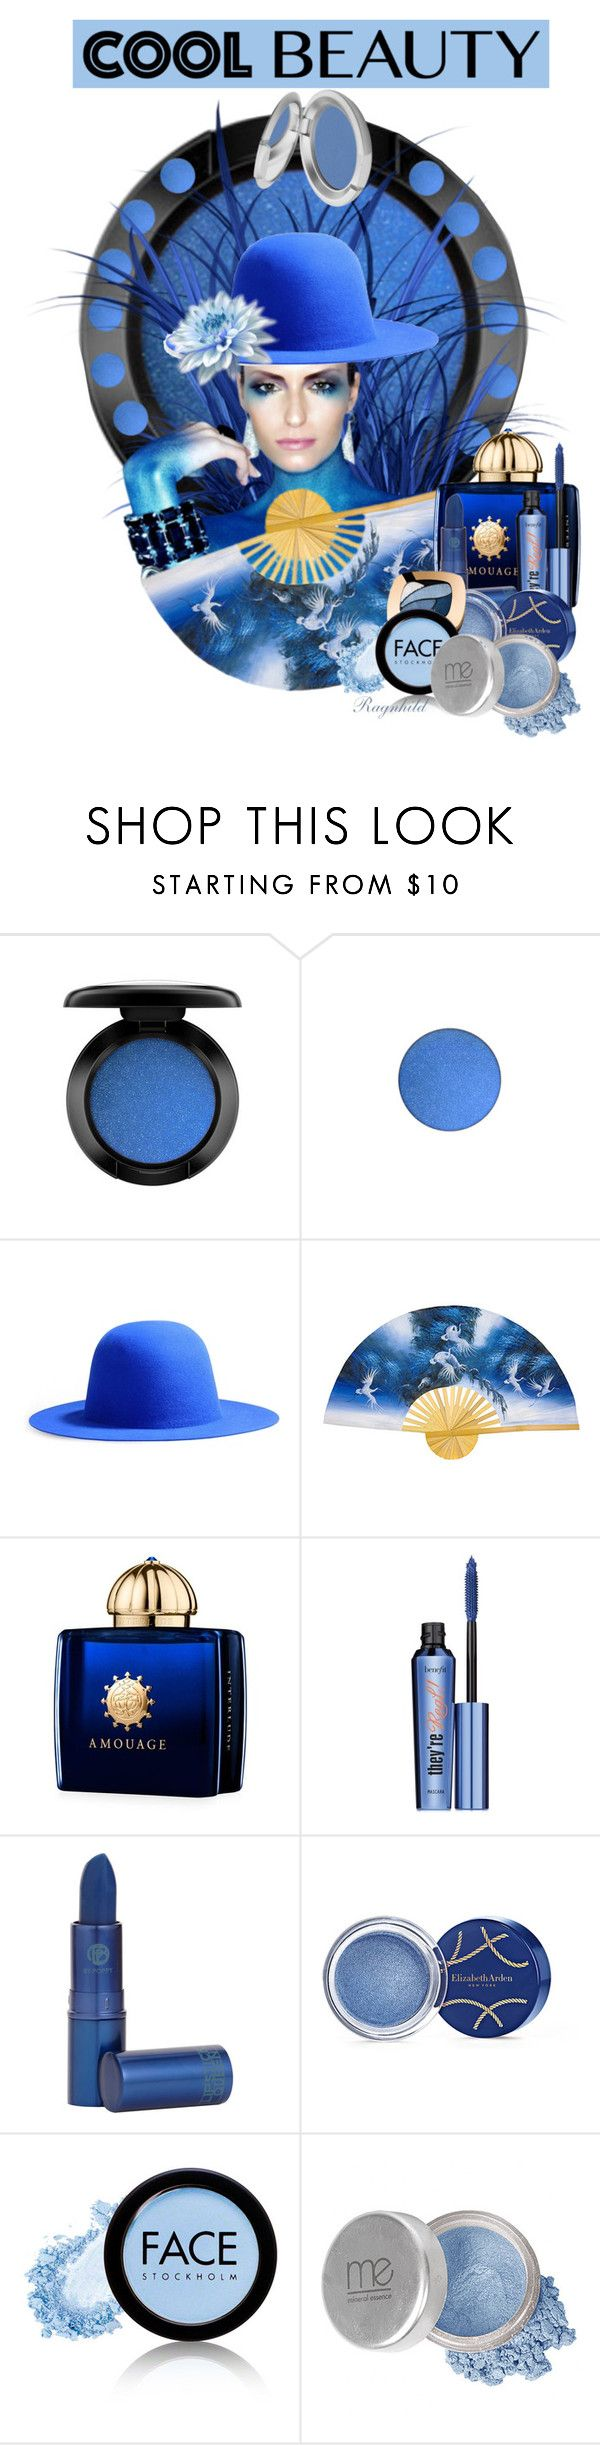 """""""True Blue Cool Eyeshadow"""" by ragnh-mjos ❤ liked on Polyvore featuring beauty, MAC Cosmetics, Études, AMOUAGE, Benefit, Lipstick Queen, Elizabeth Arden, L'Oréal Paris, FACE Stockholm and Mineral Essence"""